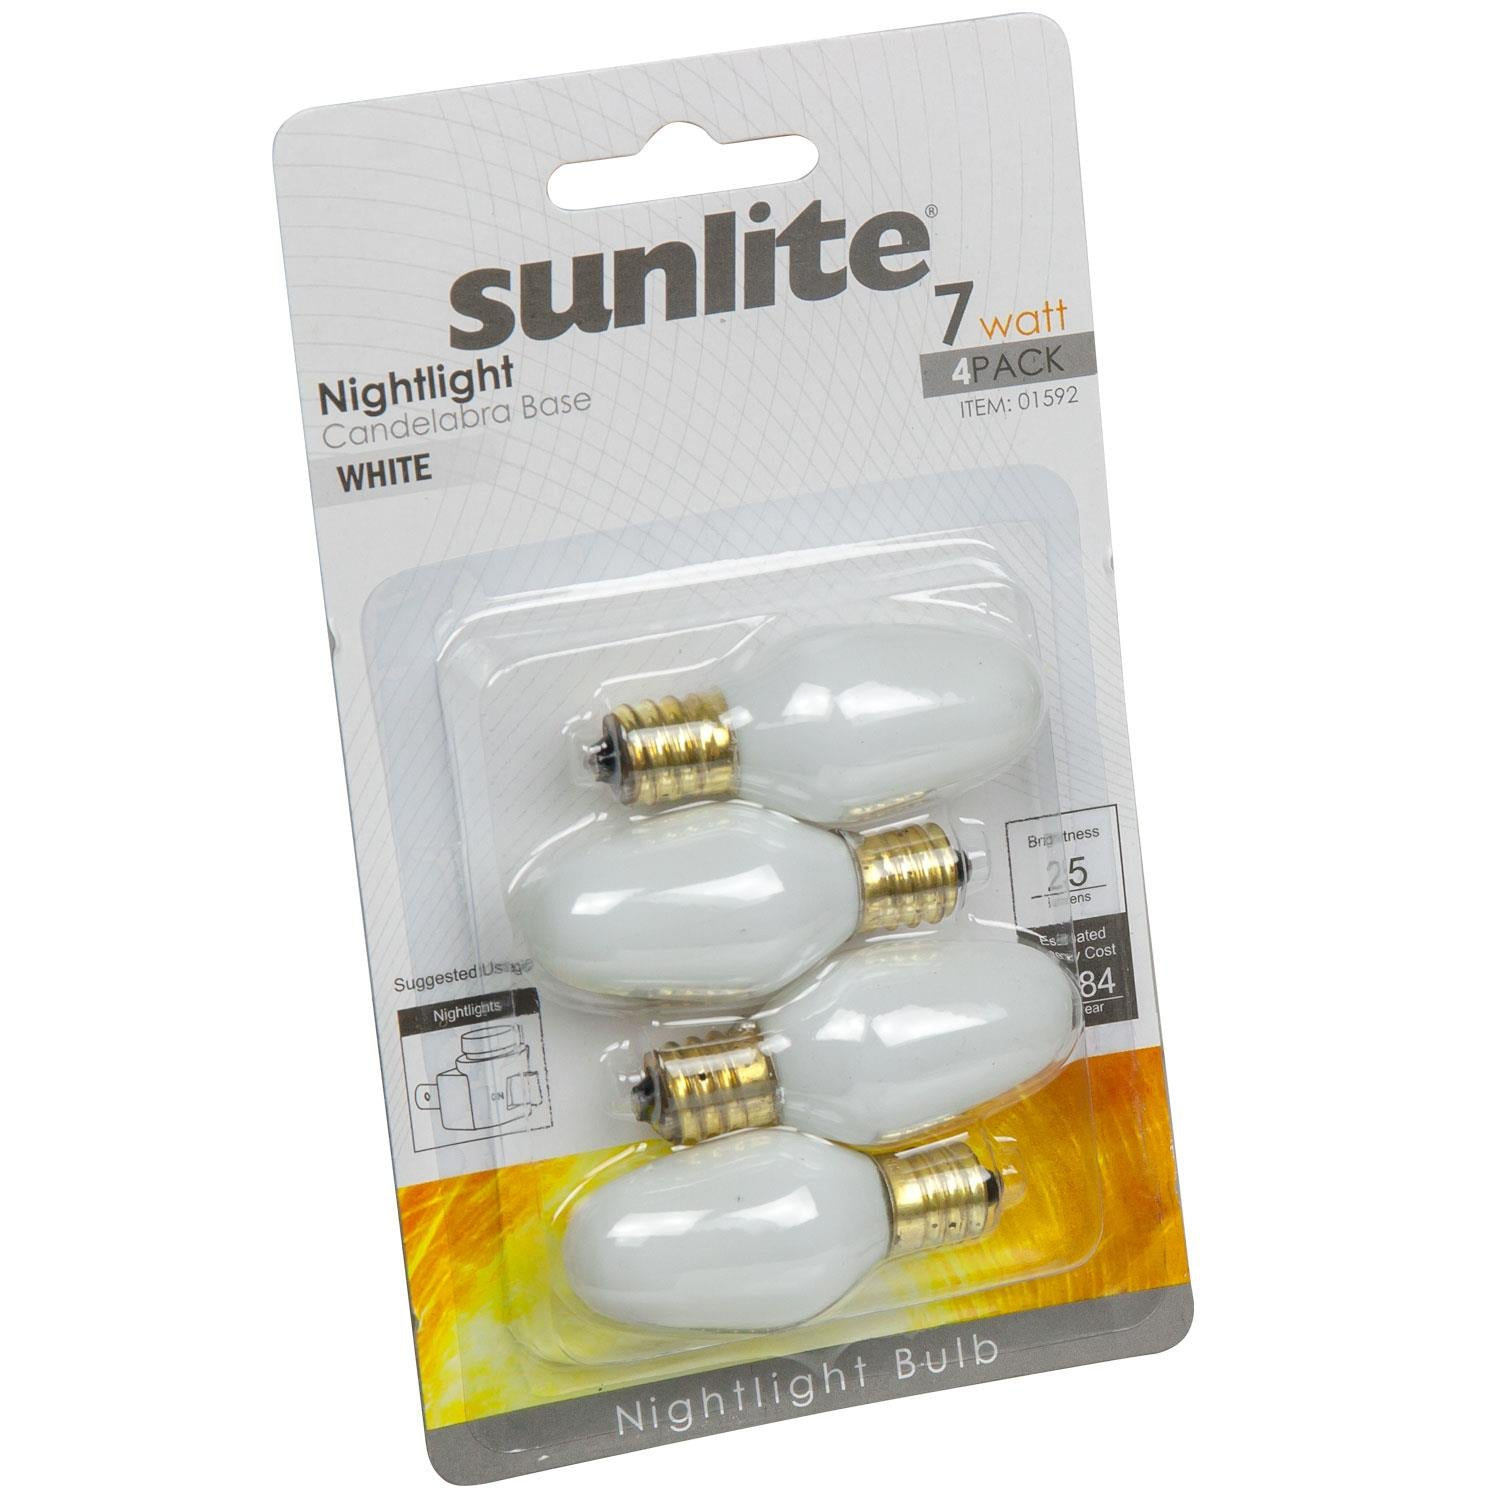 4Pk - SUNLITE 7w C7 120v Candelabra Base Night Light bulb - White finish